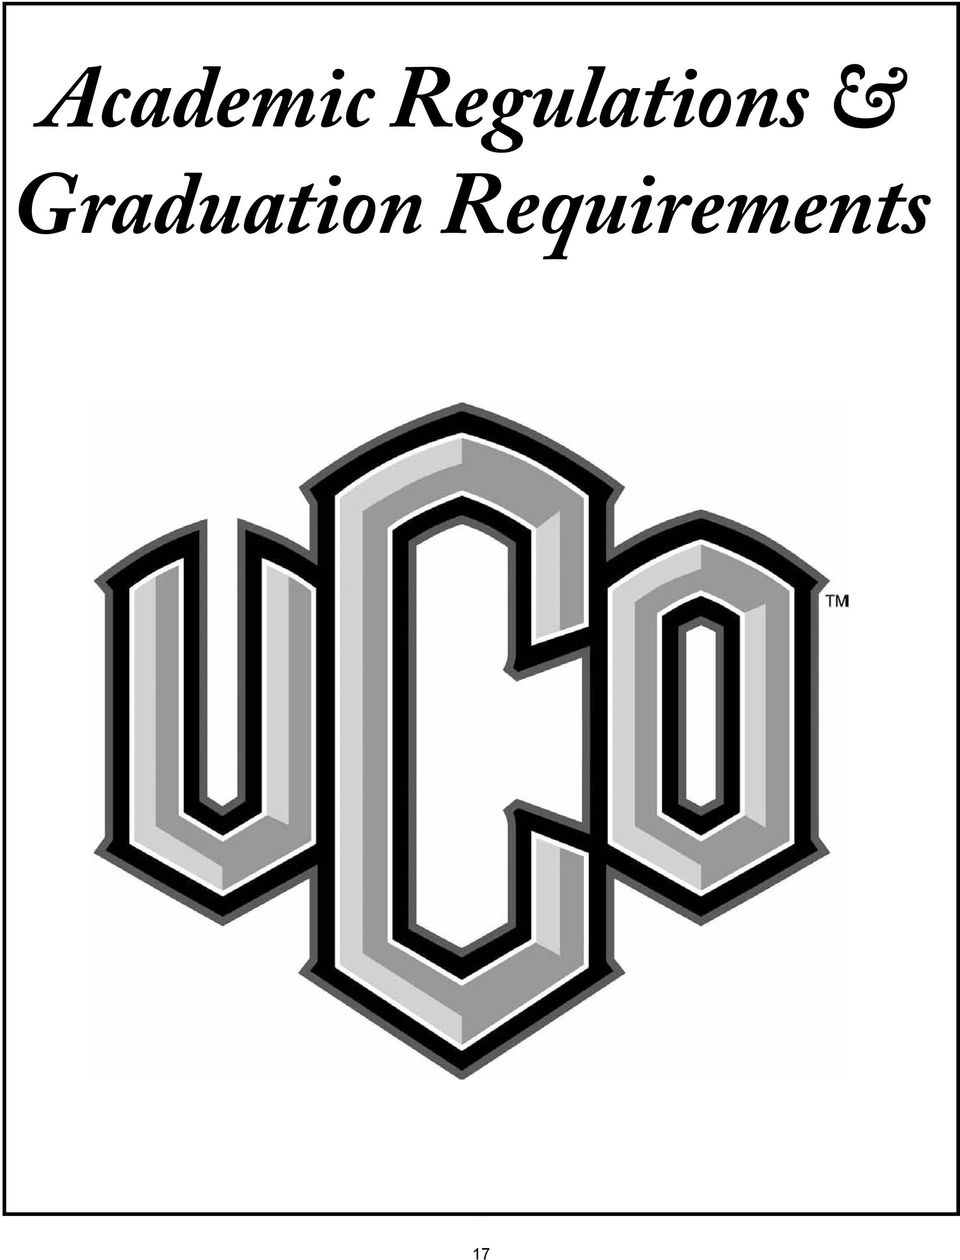 Regulations & Graduation